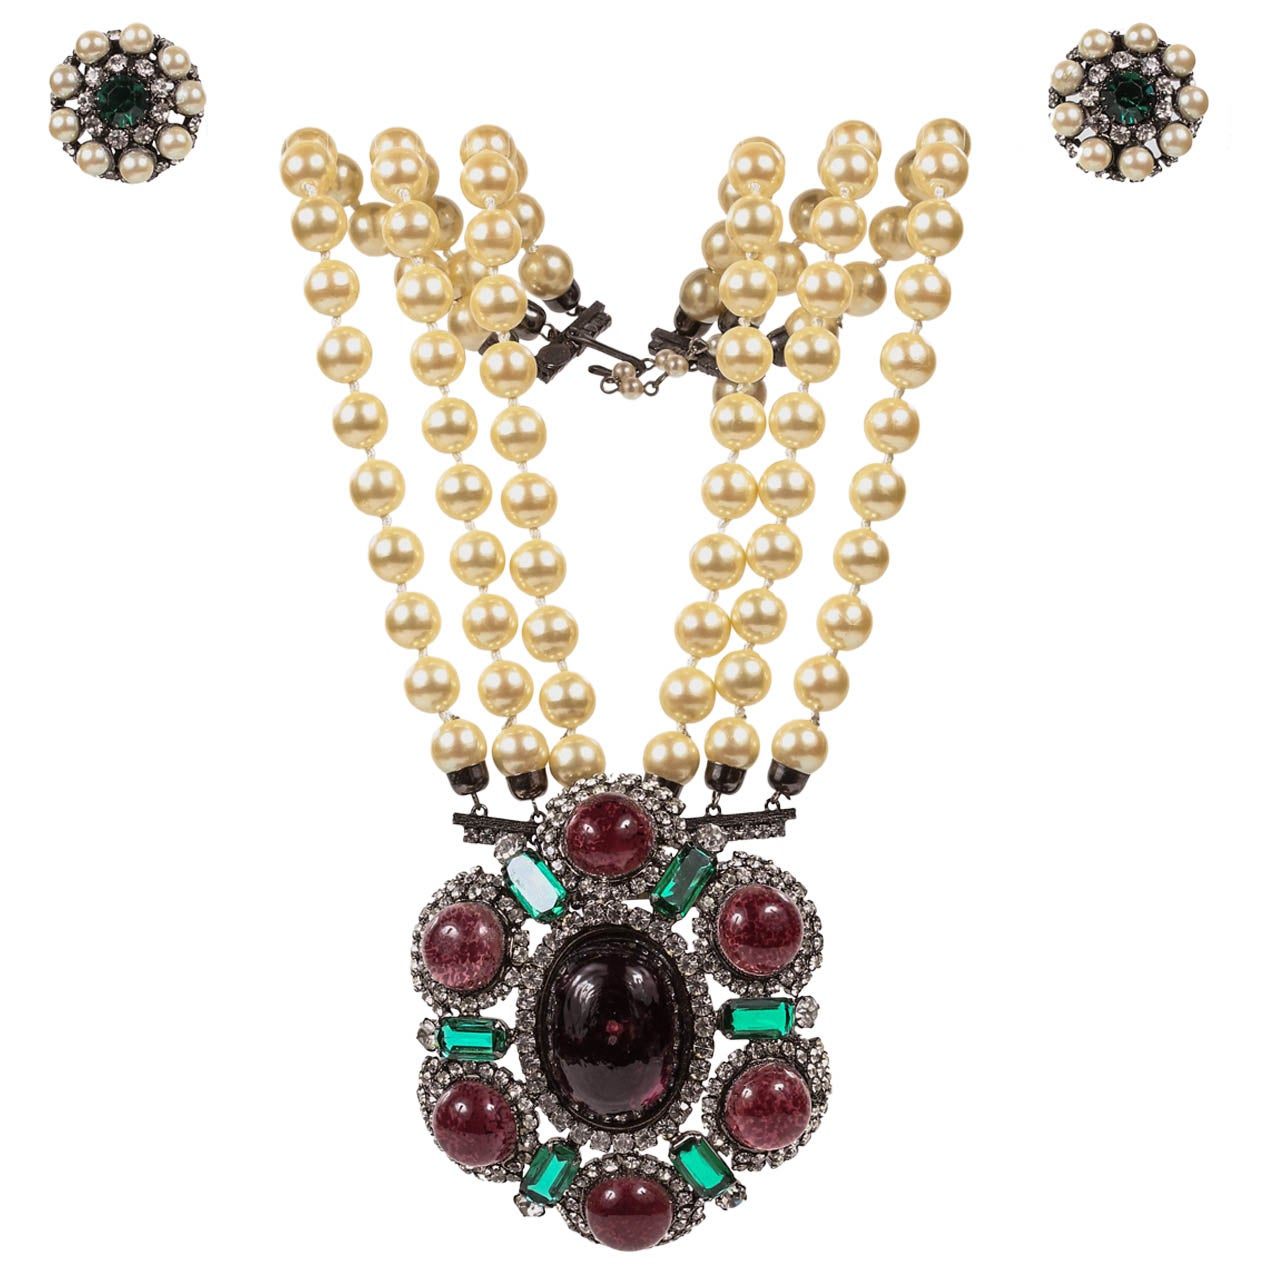 Lawrence Vrba Convertible Necklace & Ear Clip Set 1